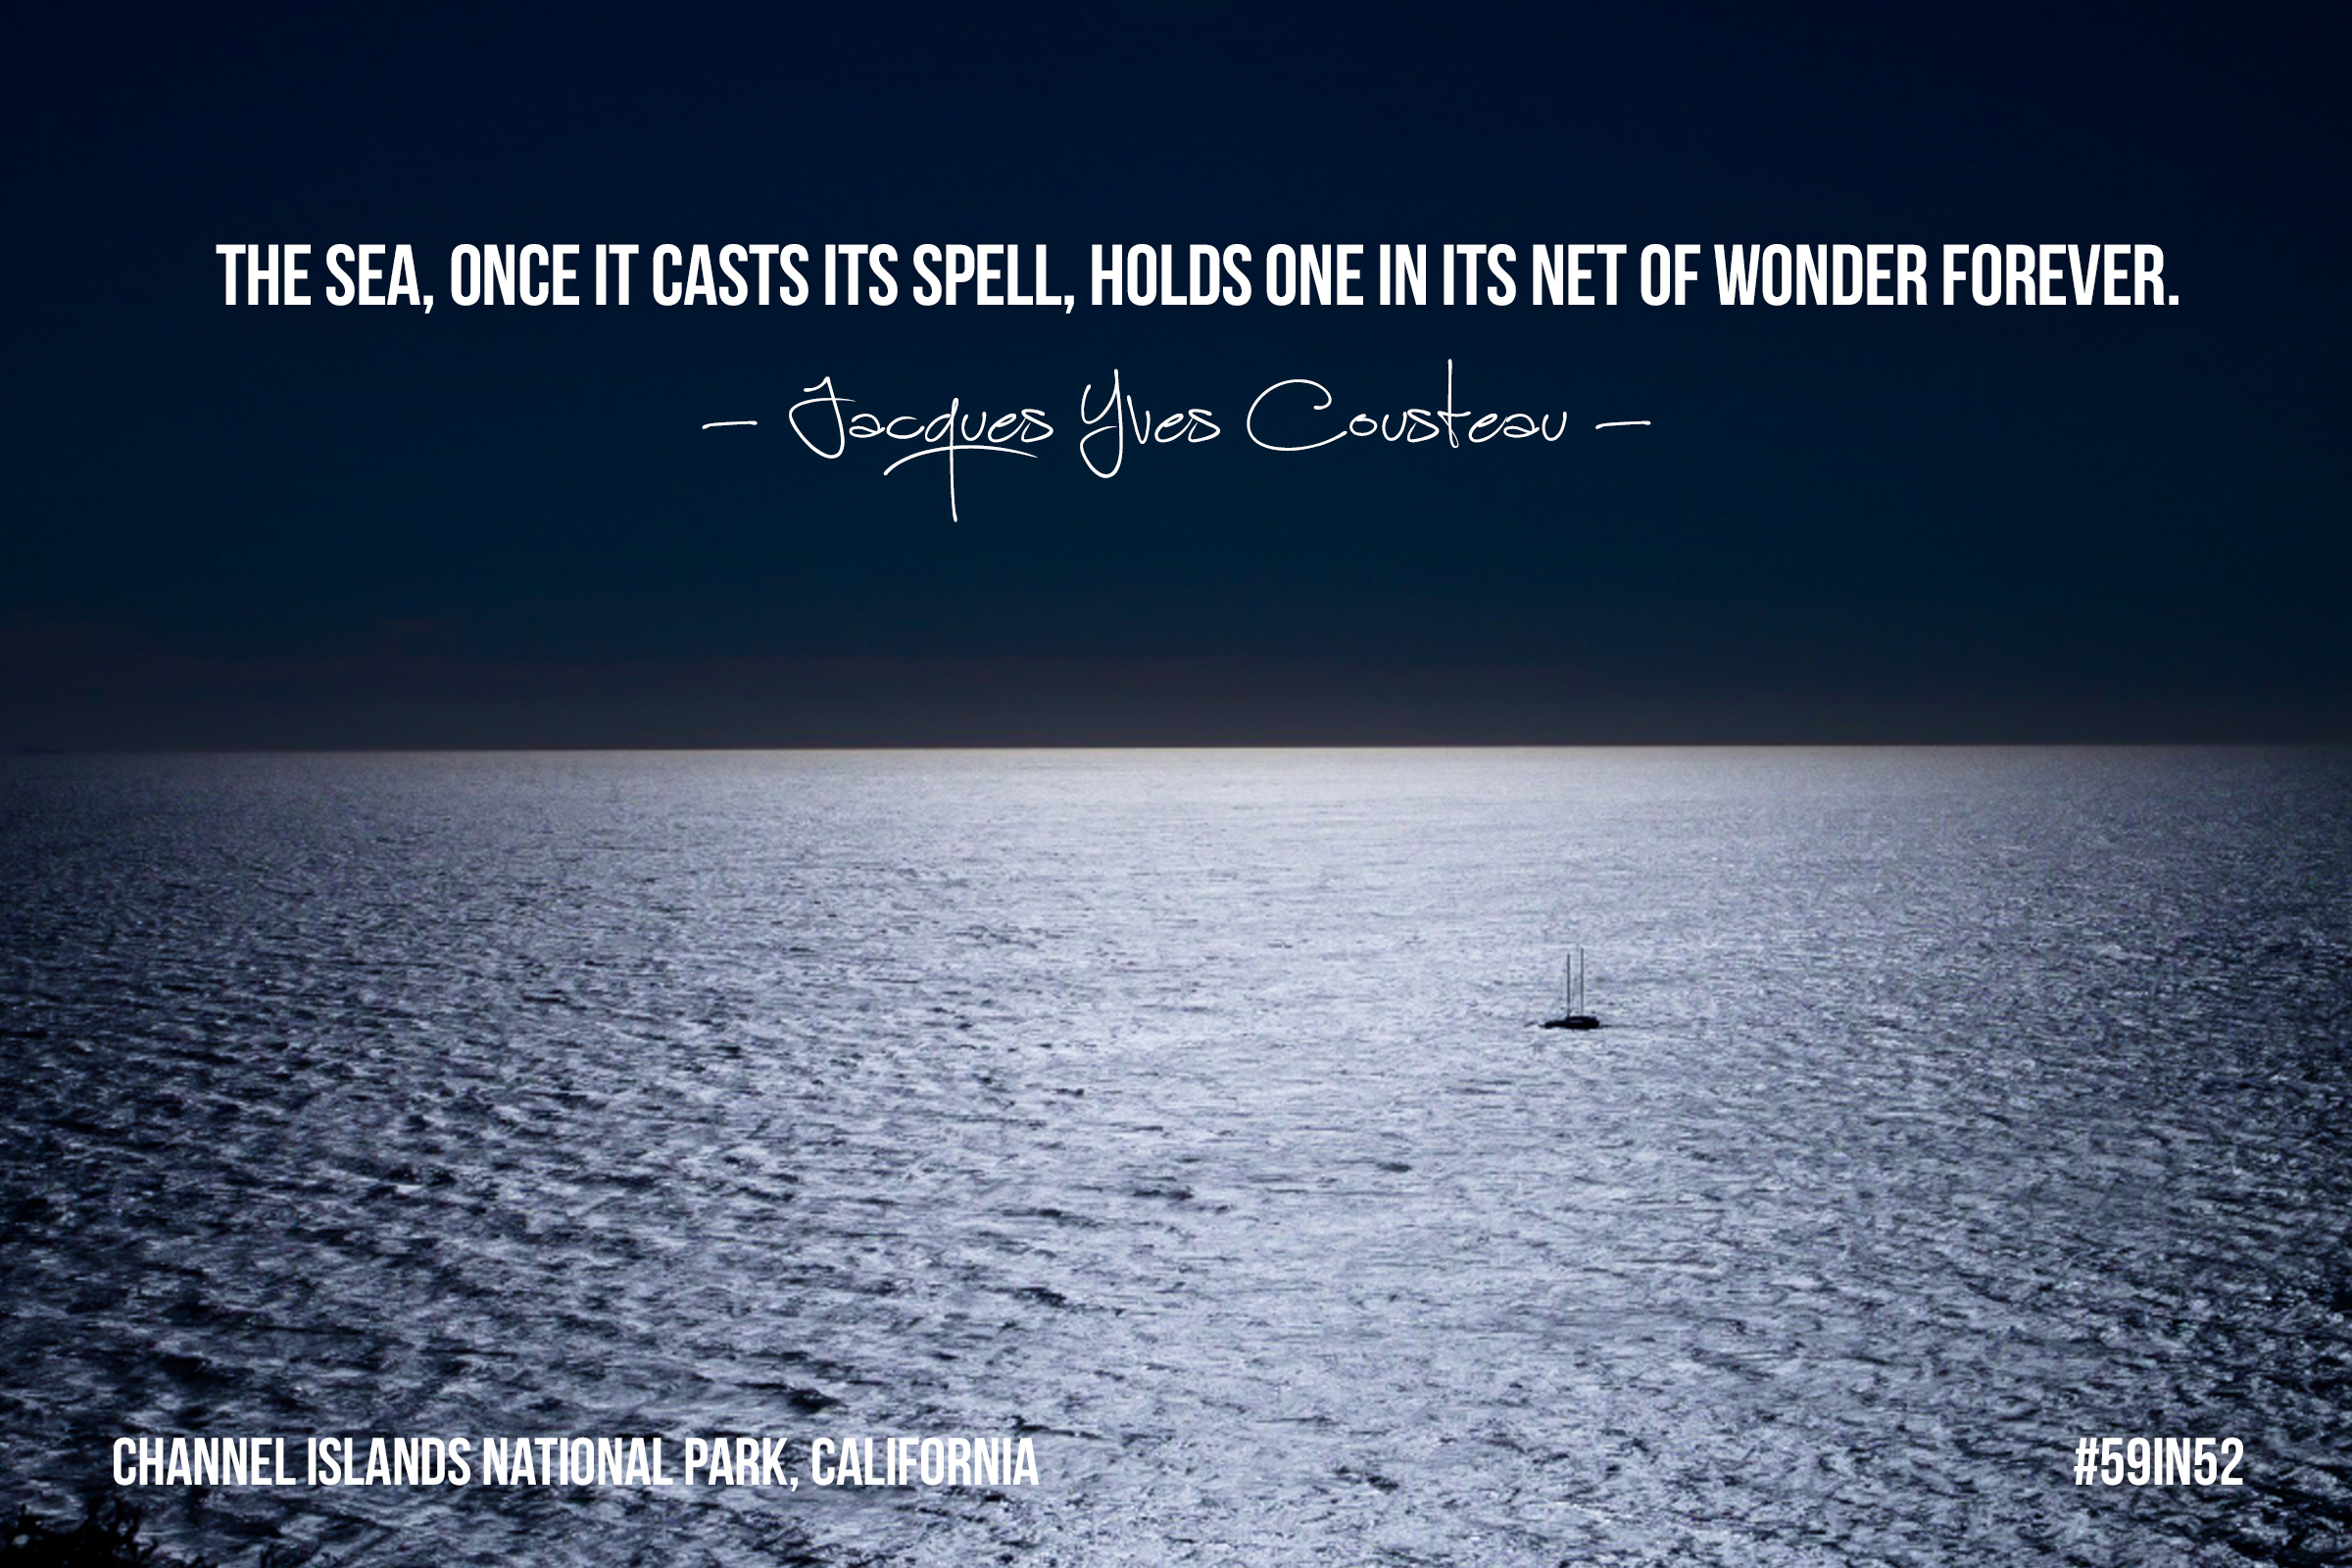 """The sea, once it casts its spell, holds one in its net of wonder forever."" - Jacques-Yves Cousteau"